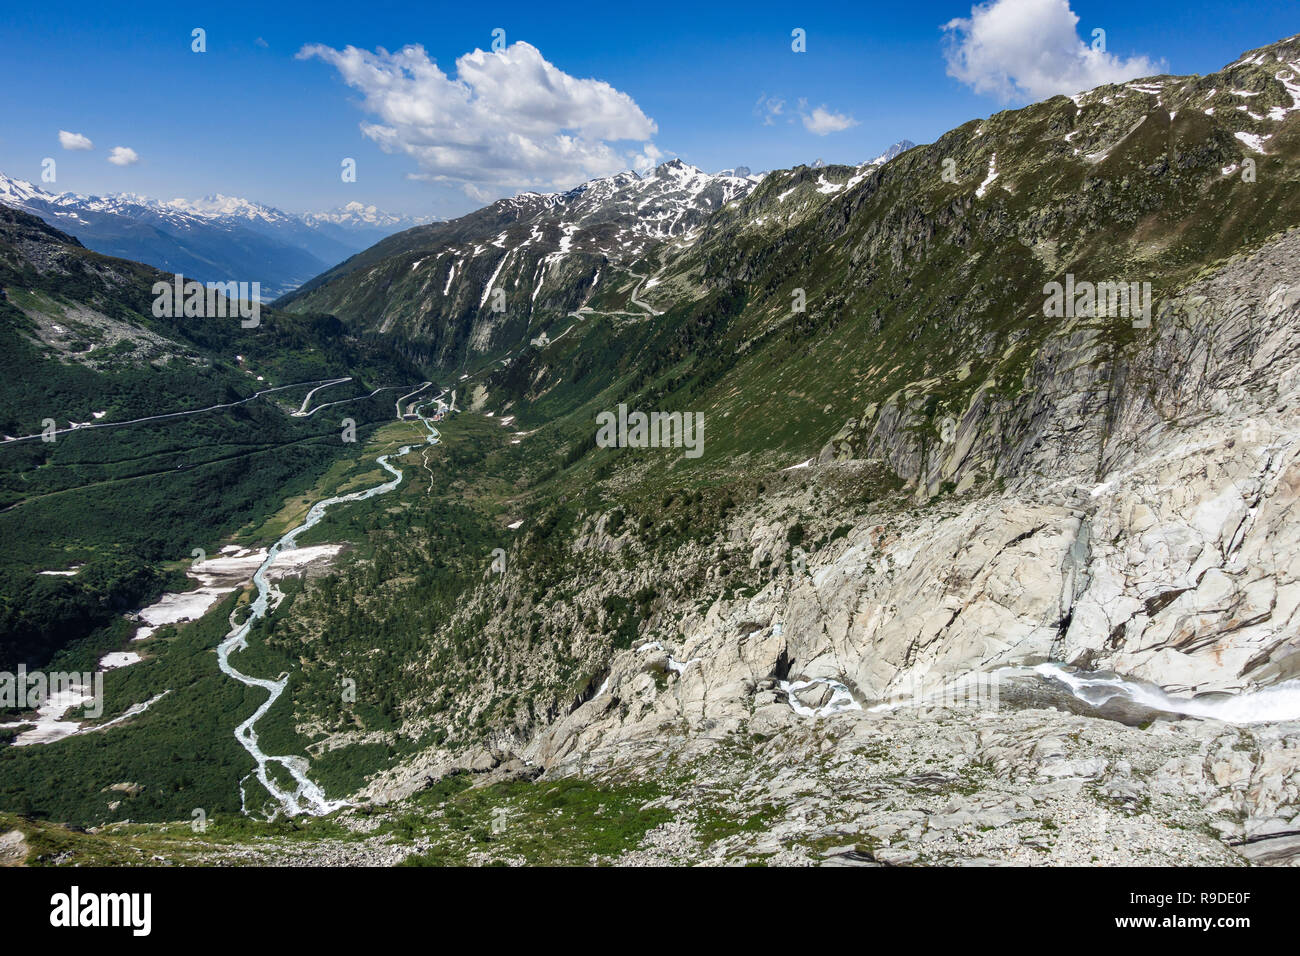 Upper Valais landscape viewed from Rhone Glacier, the source of Rhone river, Switzerland Stock Photo